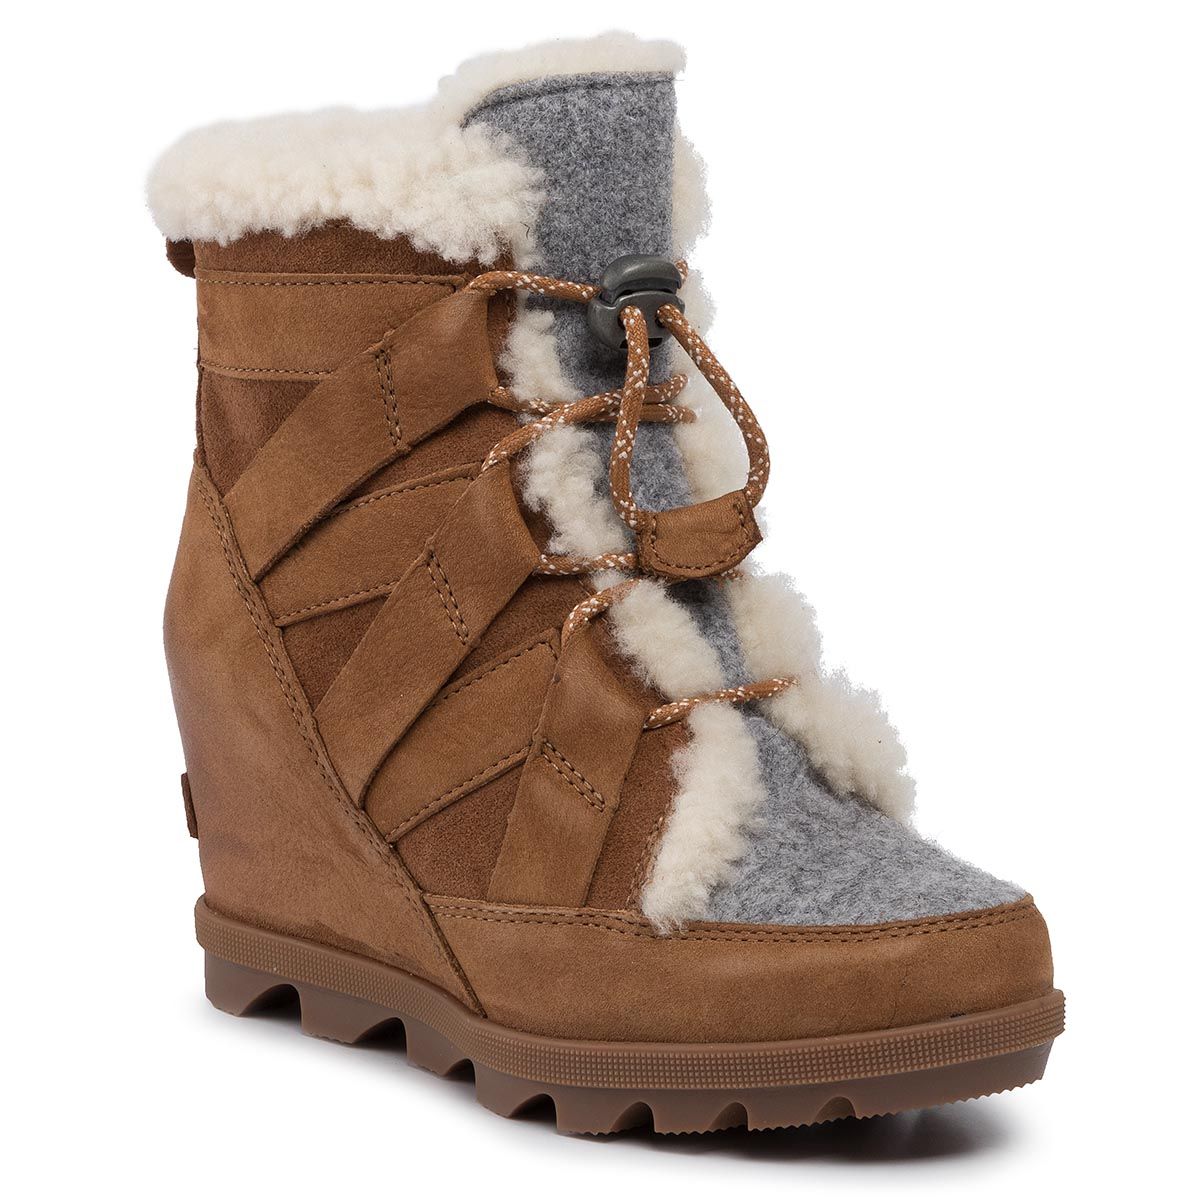 Botine SOREL - Joan Of Arctic Wedge II Cozy NL3361 Camel Brown 224